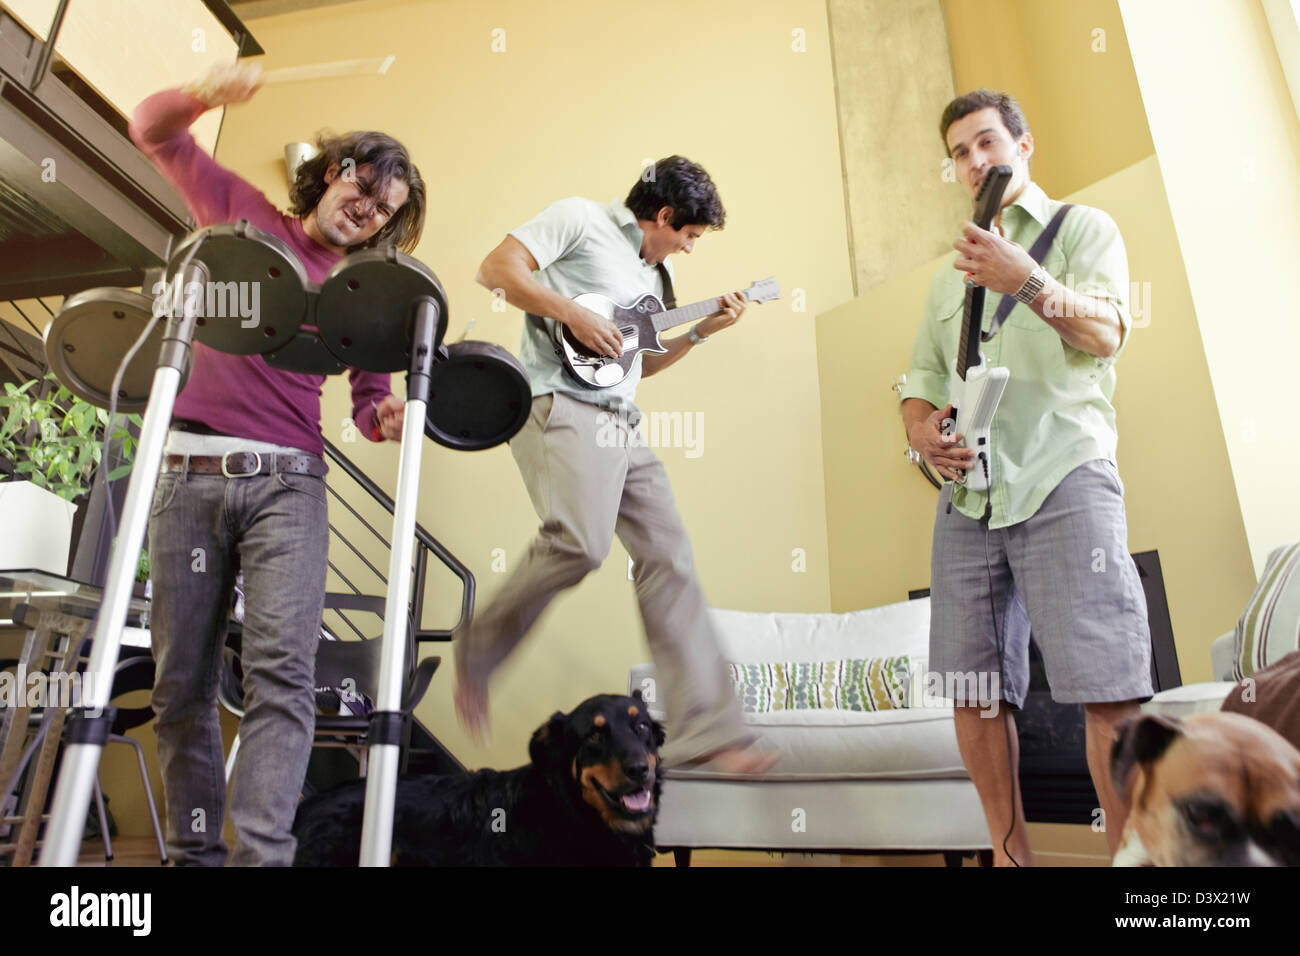 Mexian-American Men Friends Playing Rock Band Music Video Game - Stock Image